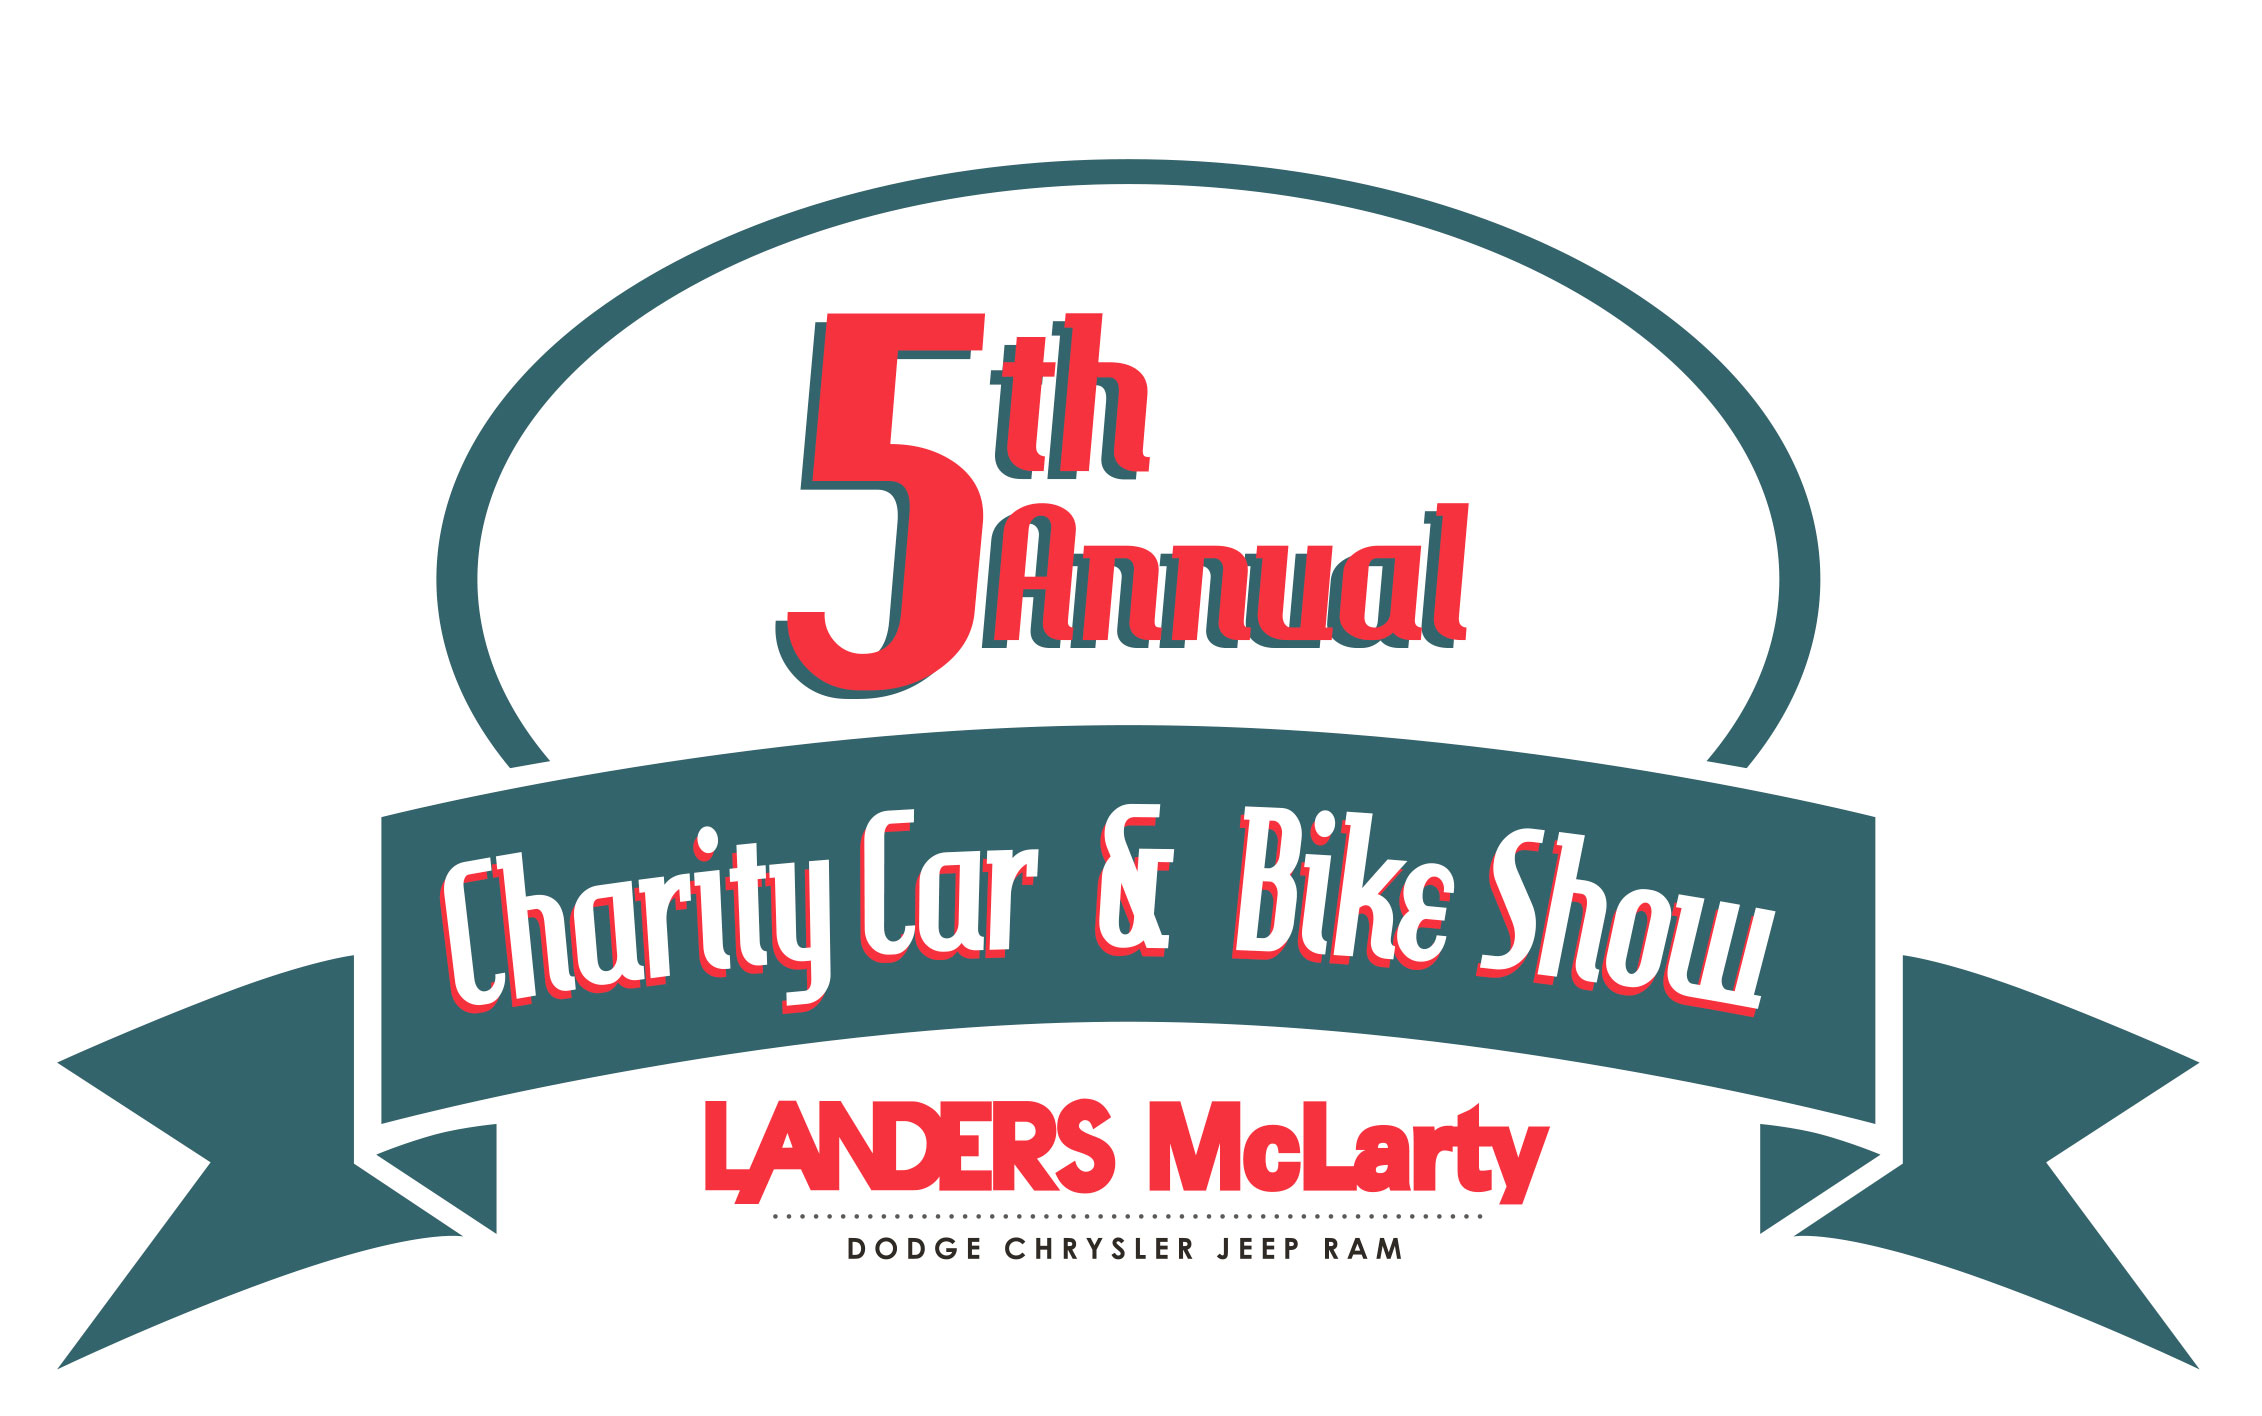 Landers Mclarty Dodge >> Landers Mclarty Dodge Chrysler Dodge Jeep Ram To Hold 5th